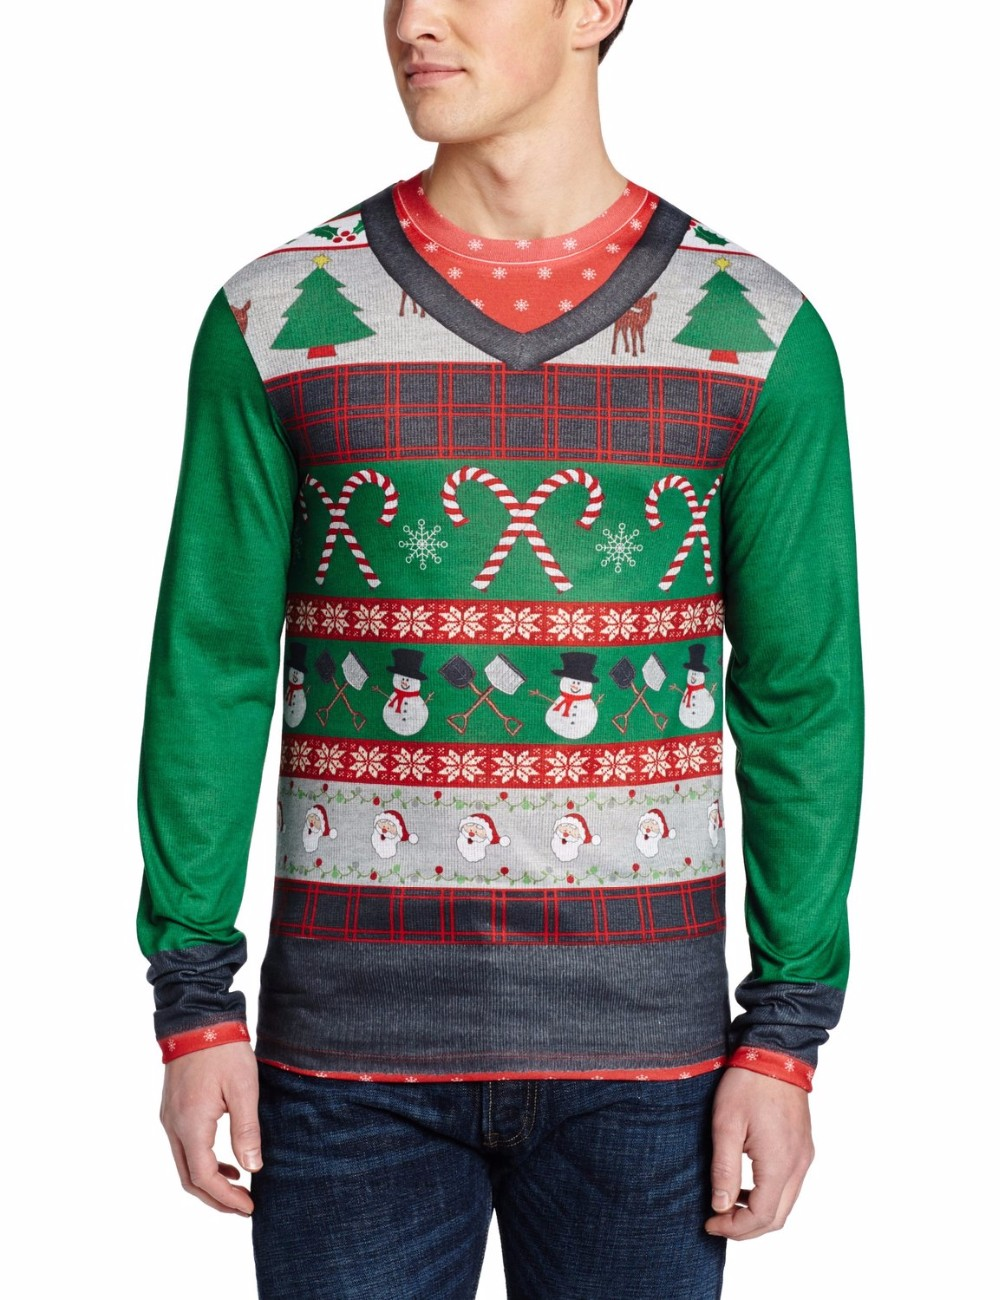 Men Green Sweater Red Striped Pattern Custom Christmas Sweater